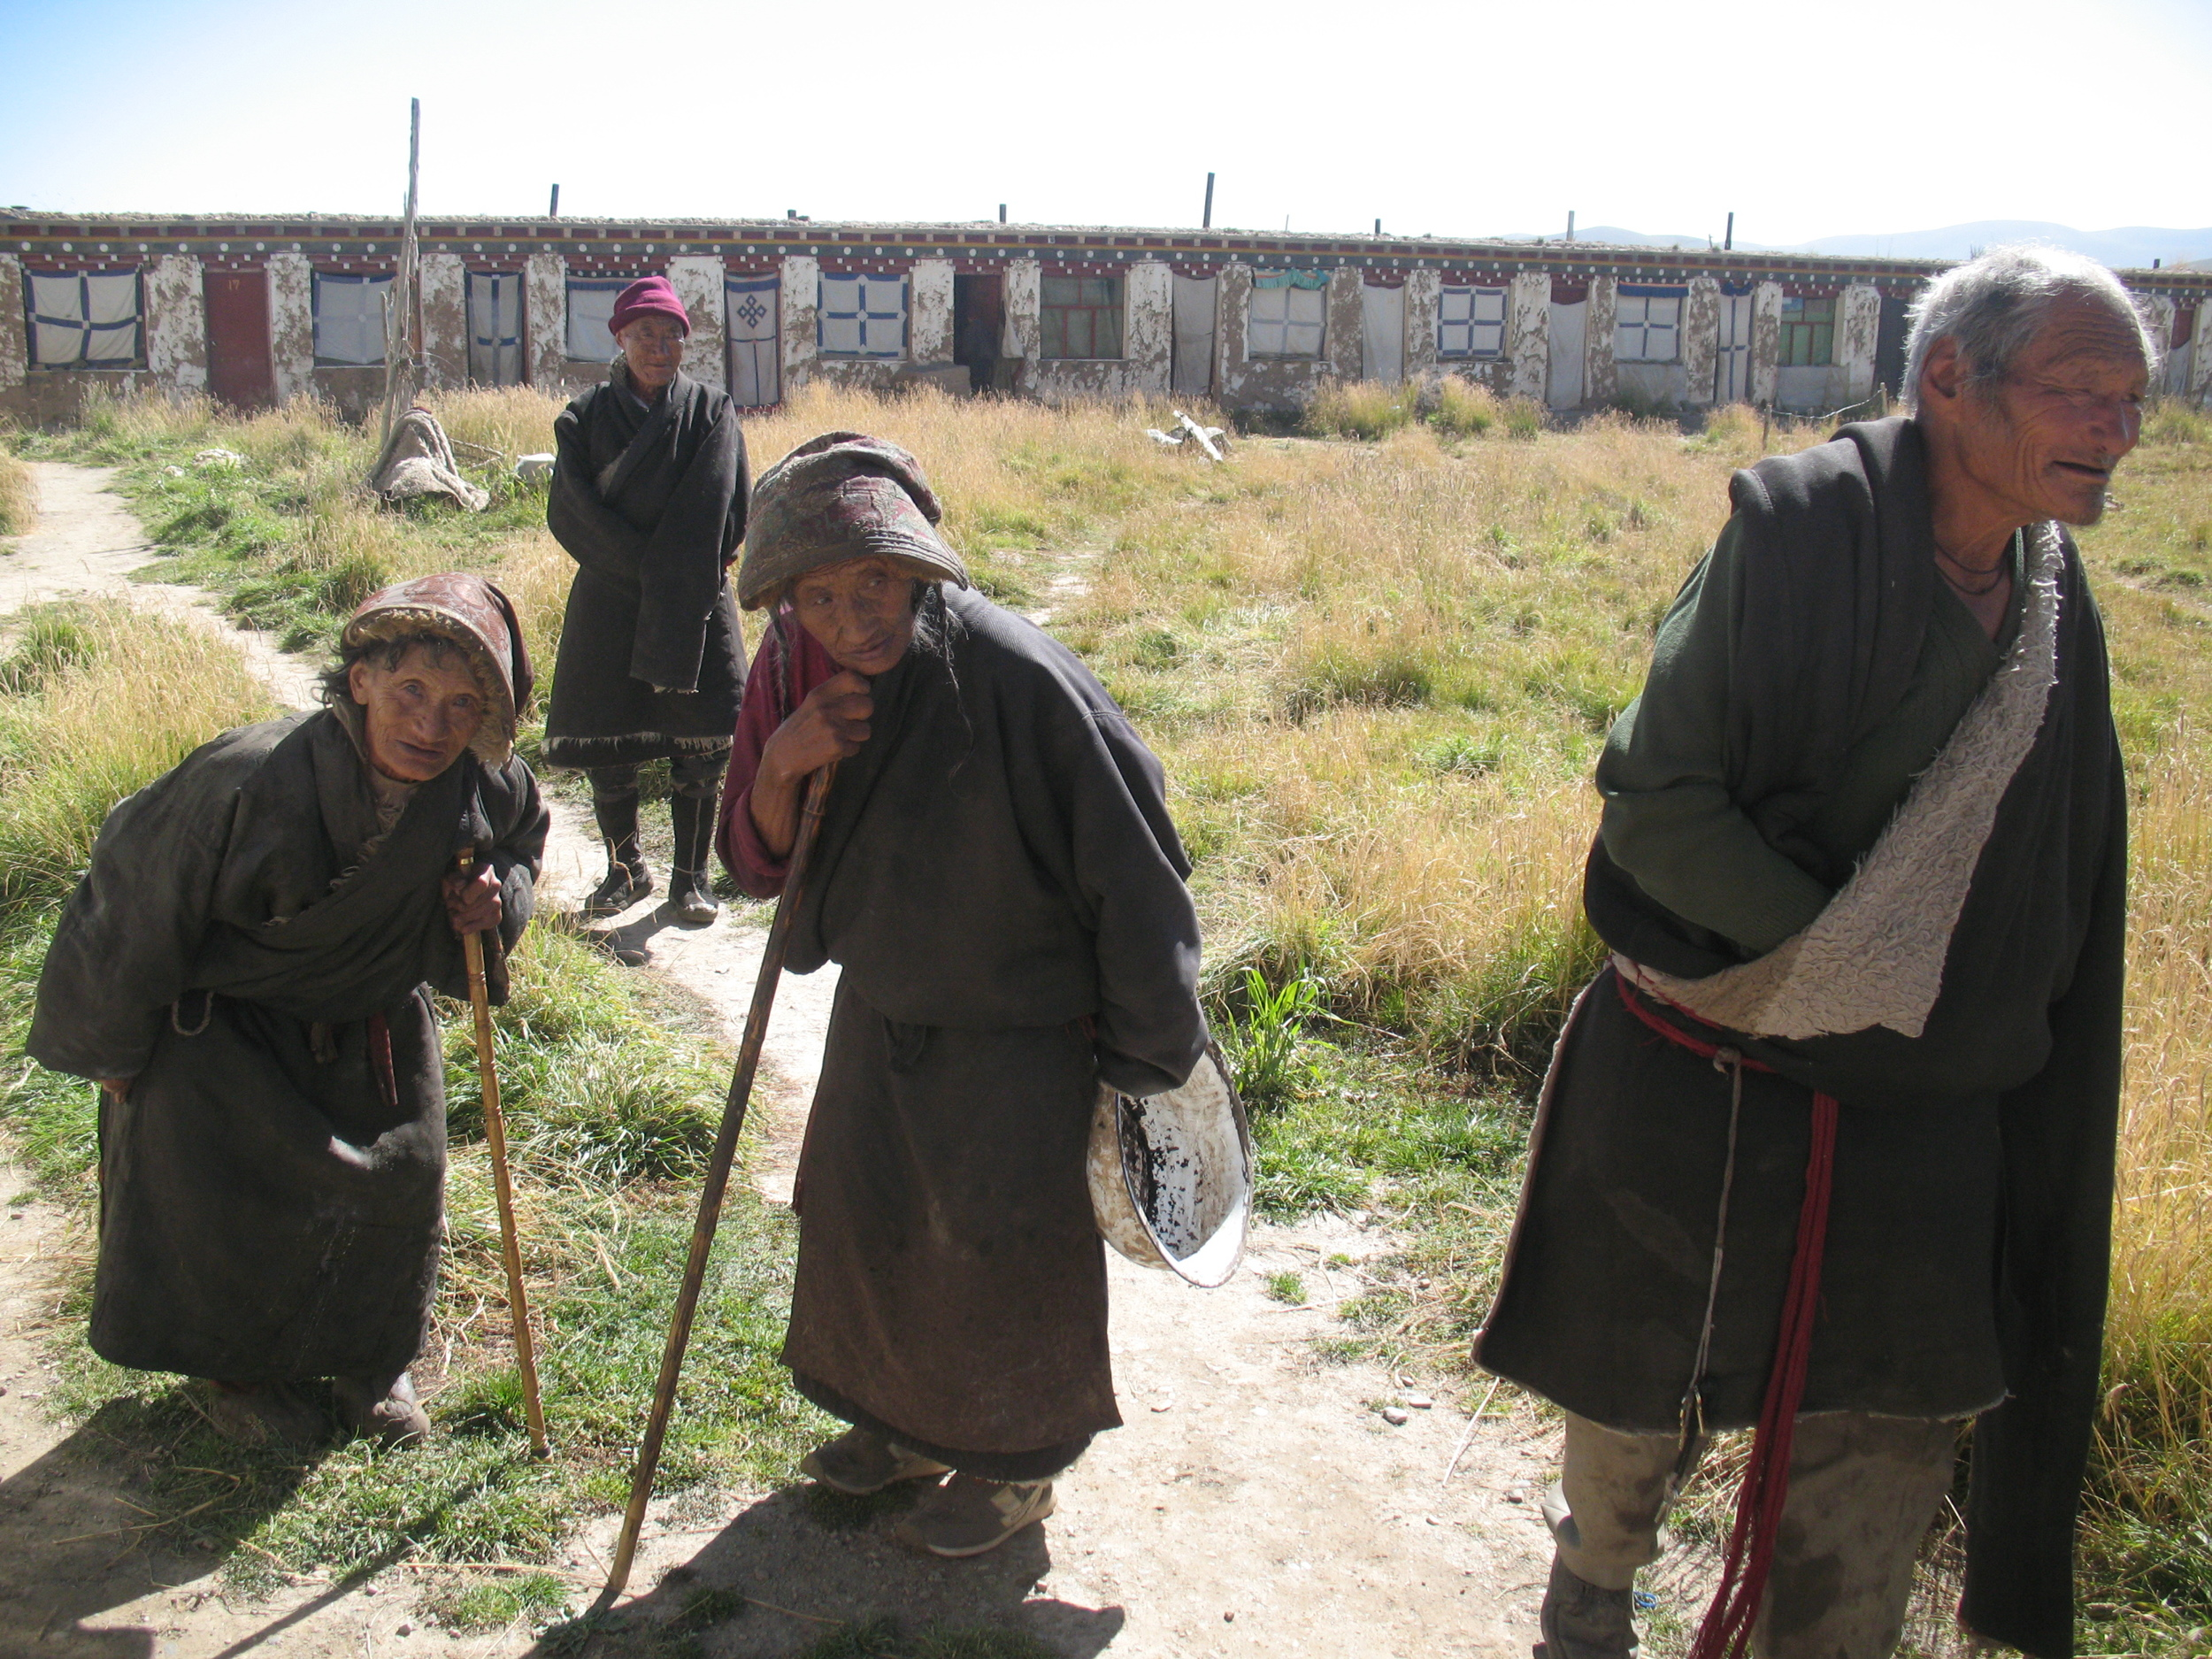 Elderly men and women preparing to do koras